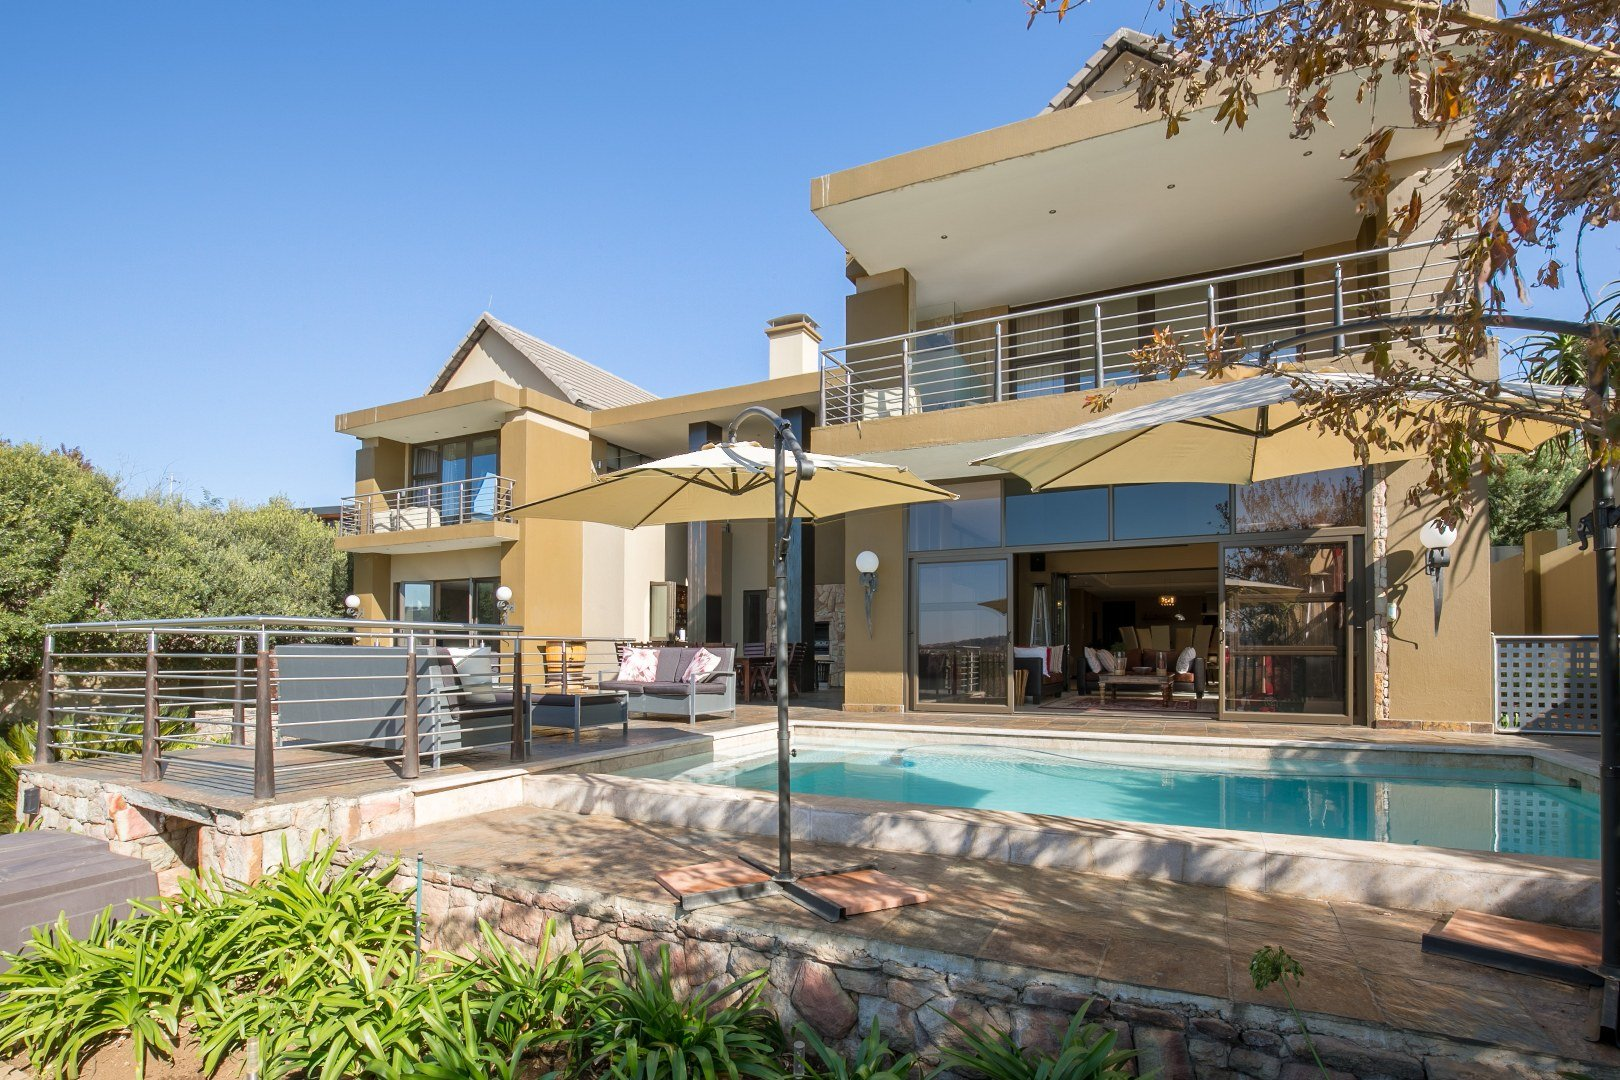 Meyersdal Eco Estate property for sale. Ref No: 13574070. Picture no 2